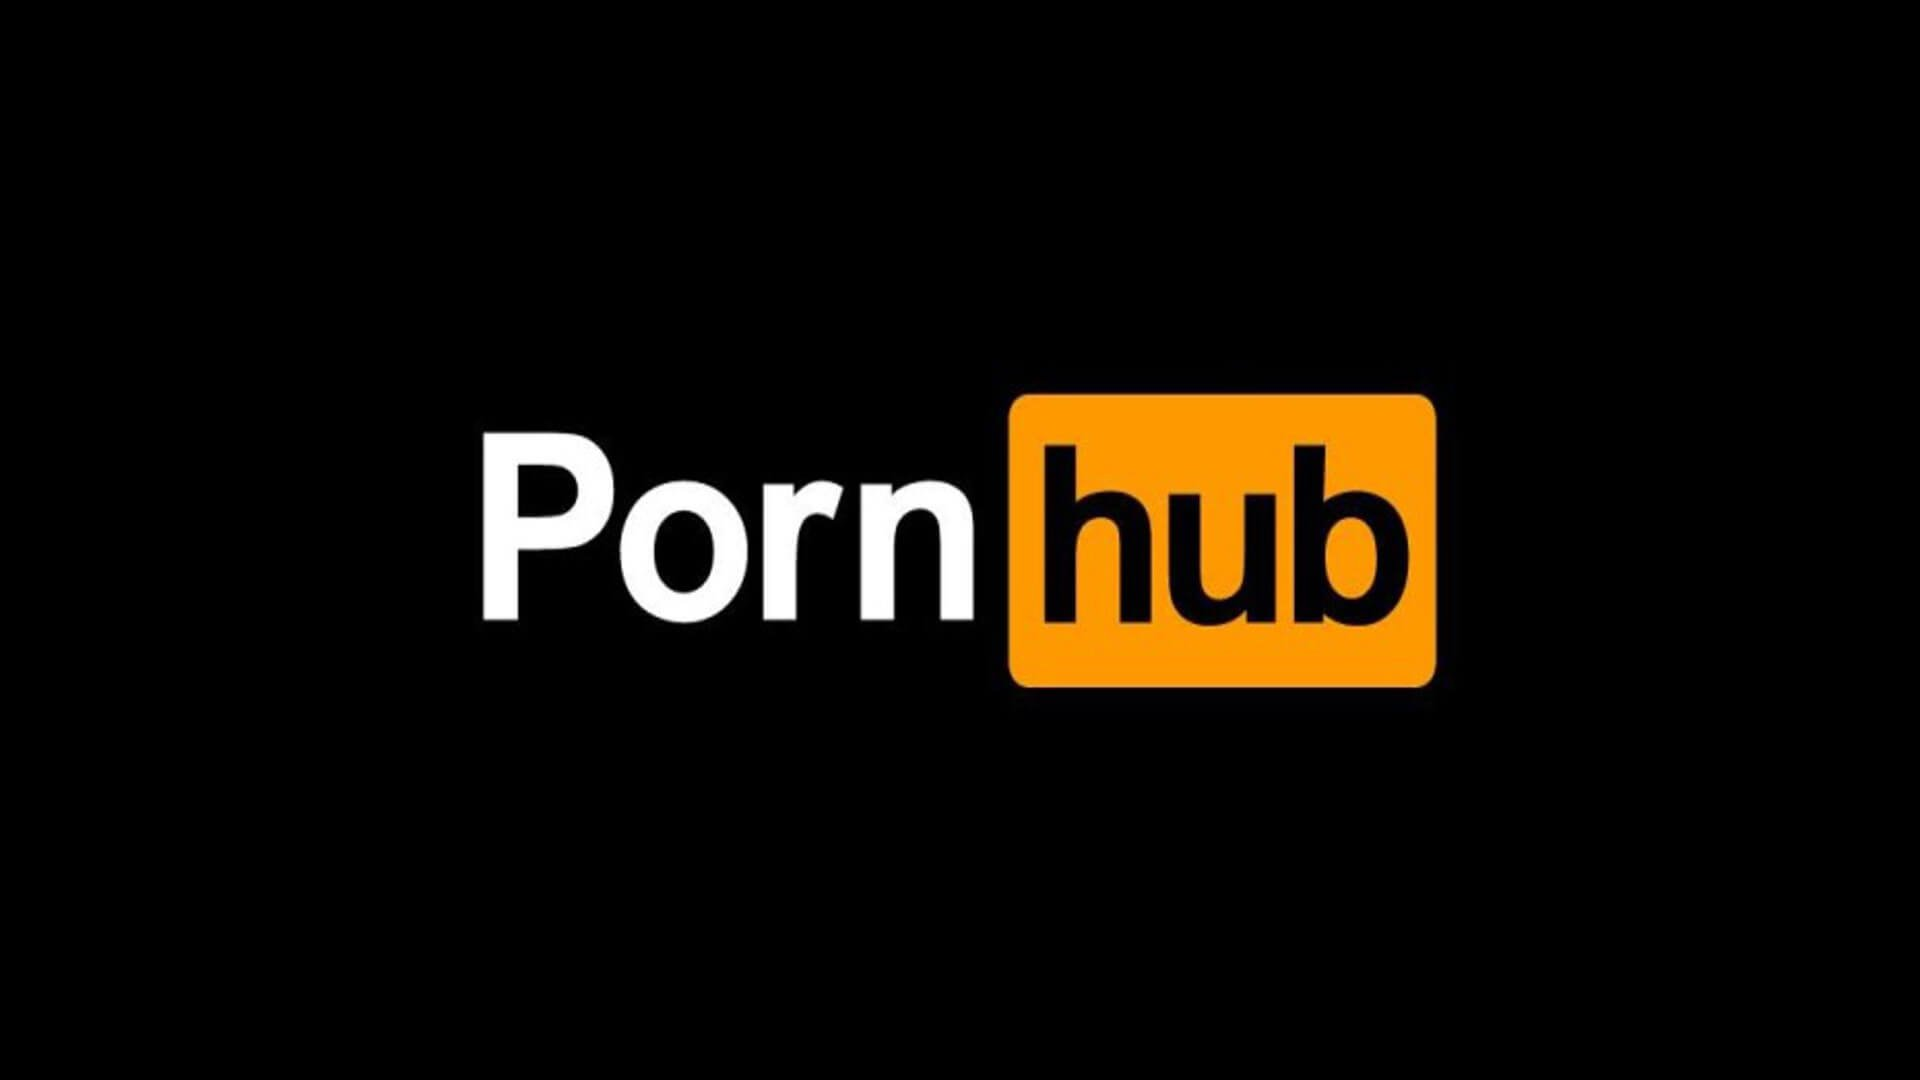 ps4 dominates pornhub traffic for consoles